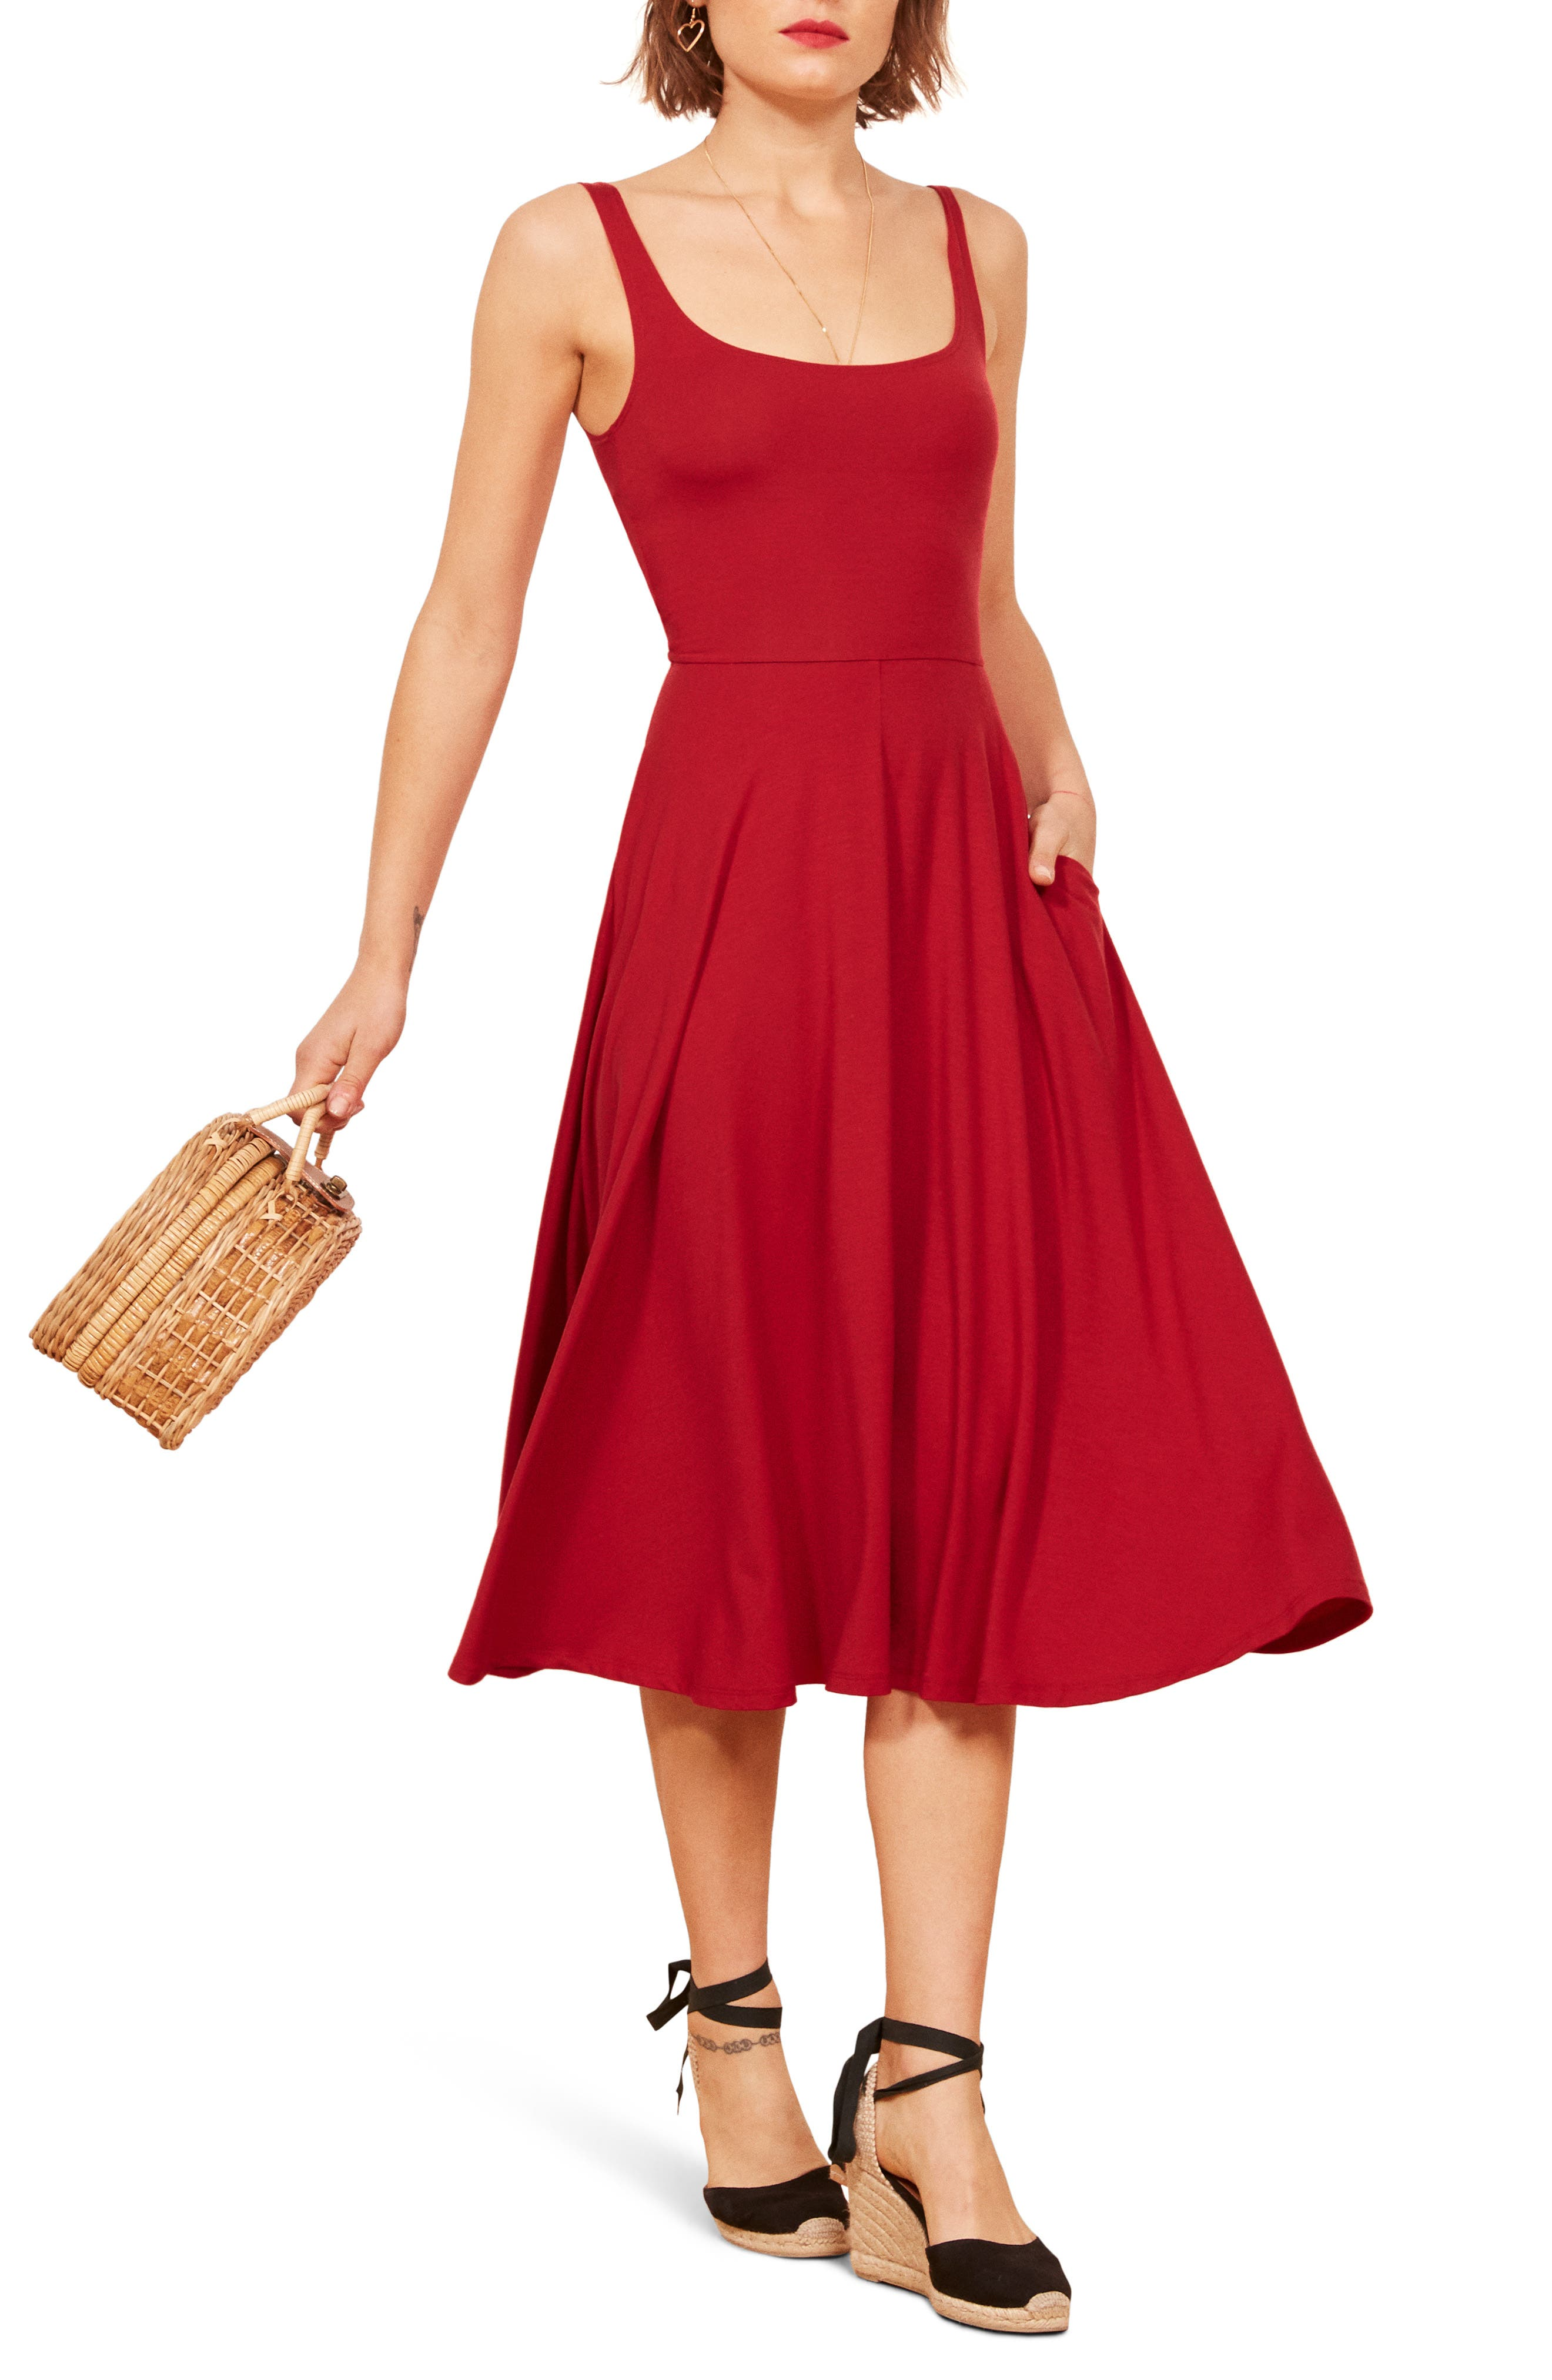 REFORMATION, Rou Midi Fit & Flare Dress, Main thumbnail 1, color, CHERRY